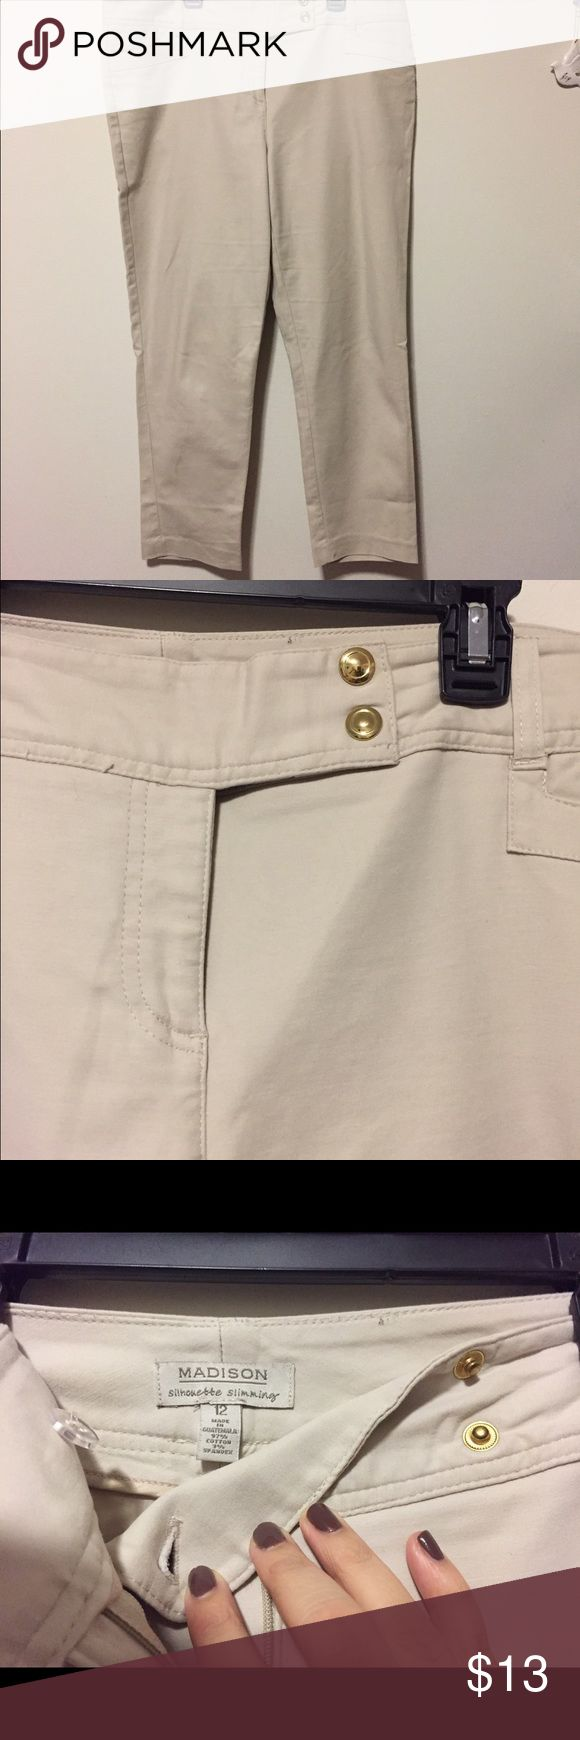 Dressy khaki capris Really nice material. Only wore them once for a school function. Great for work. Pants Capris